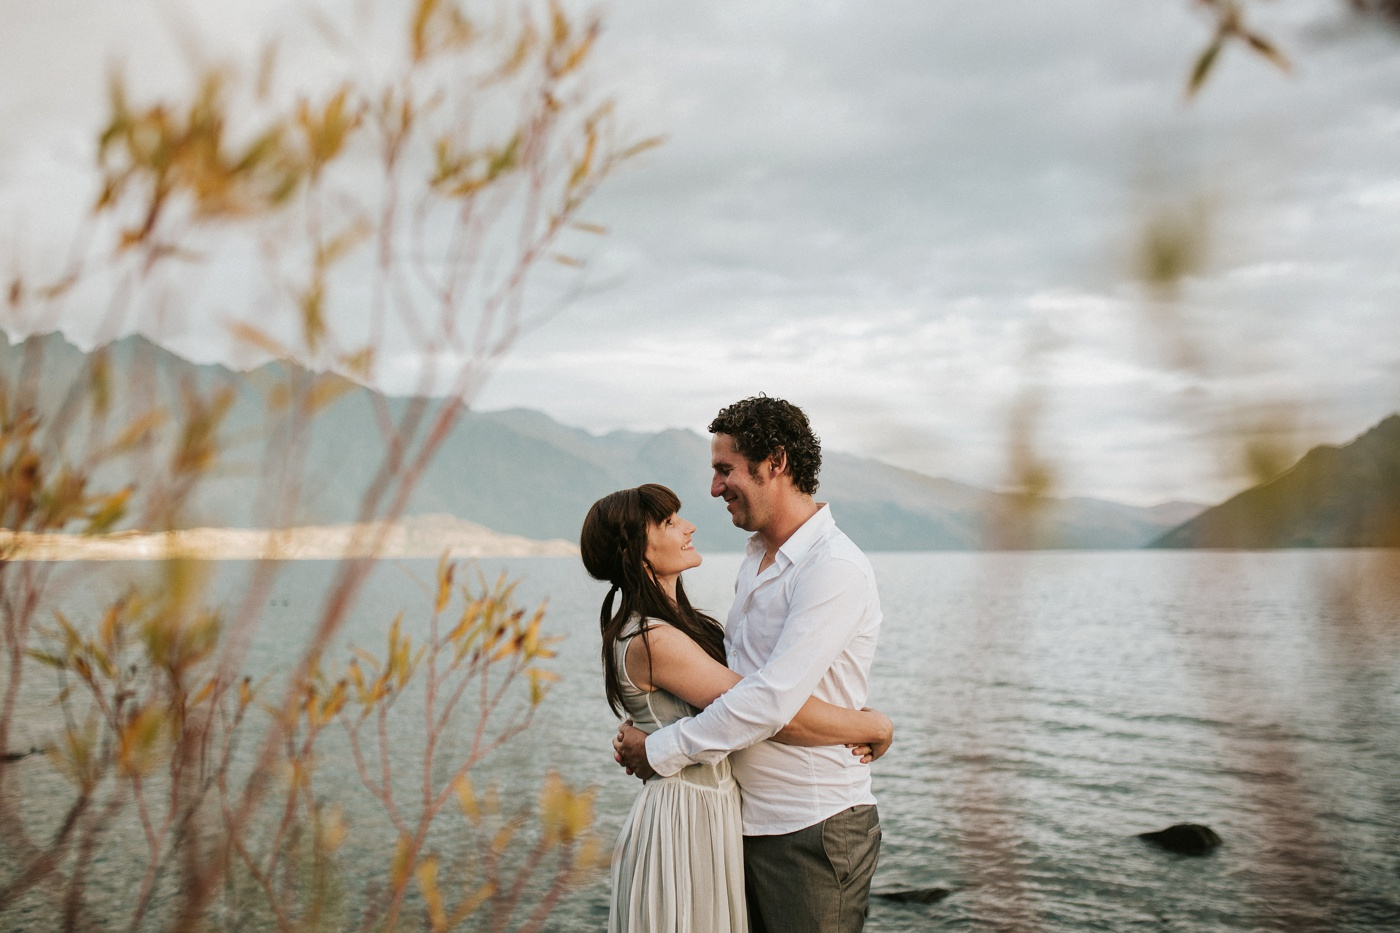 Relaxed-Natural-Sweet-New-Zealand-Queenstown-Engagement-Session_Melbourne-Wedding-Photography_18